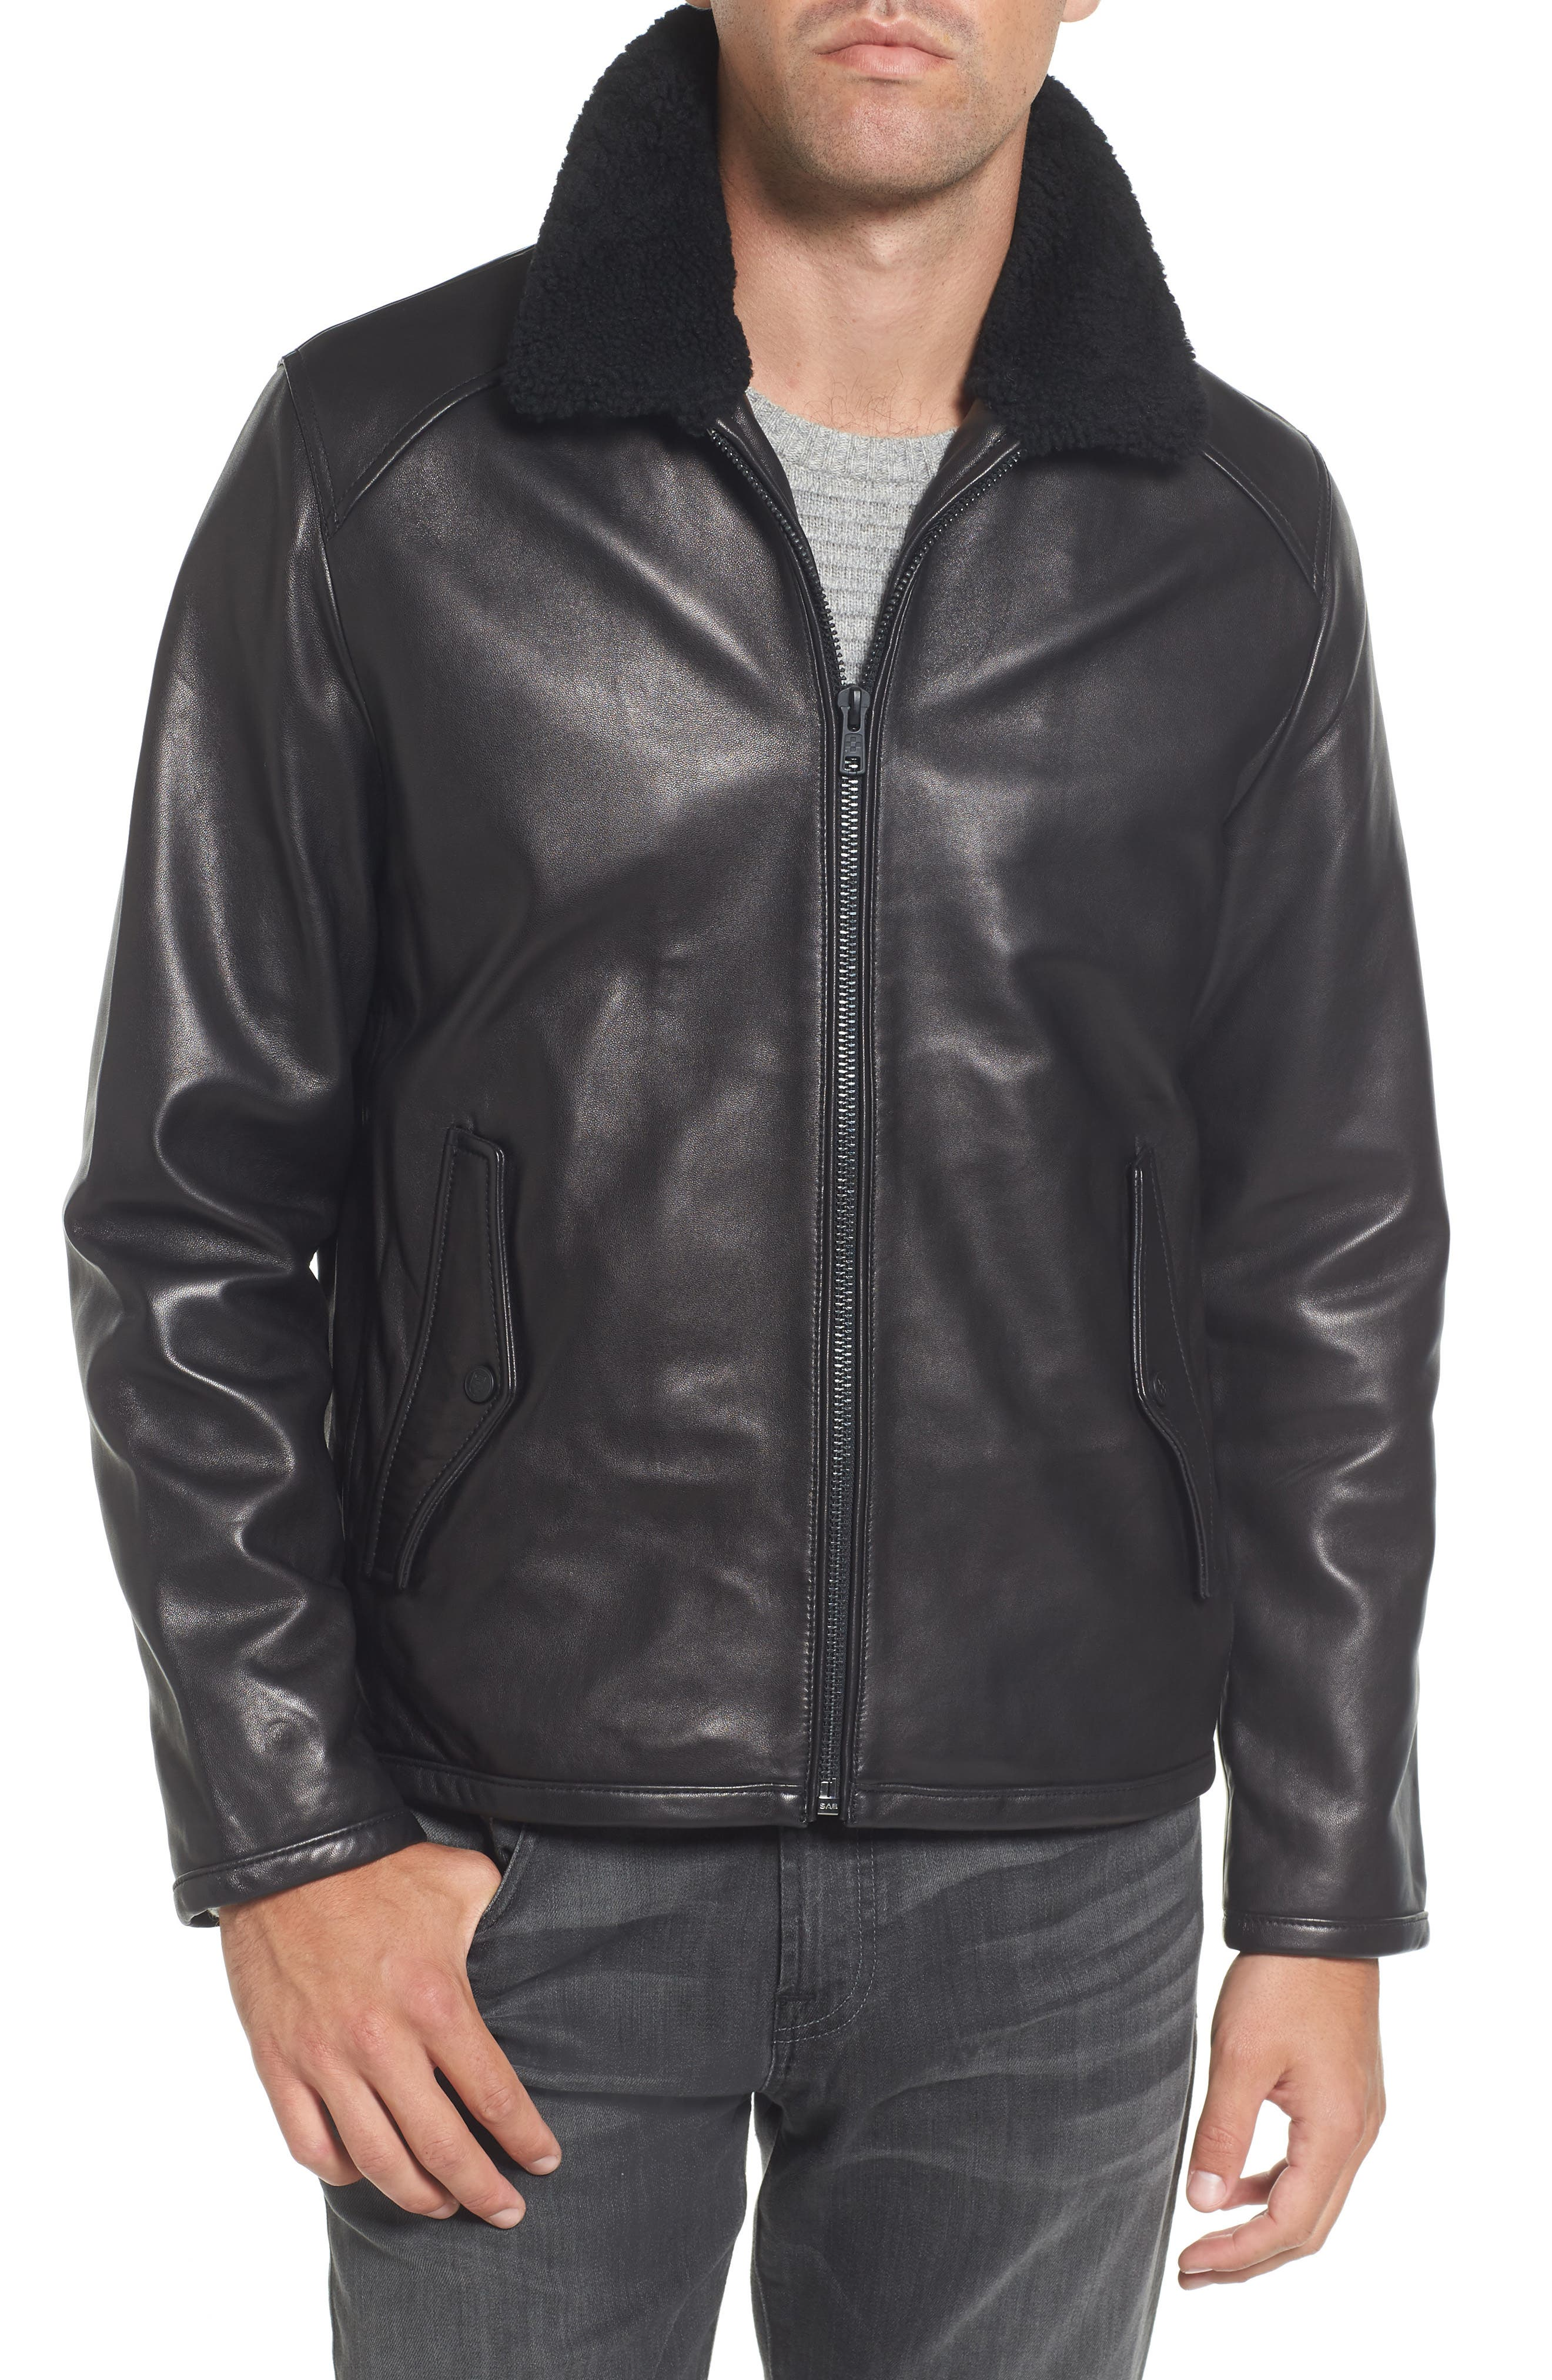 Vince Camuto Genuine Shearling Leather Jacket